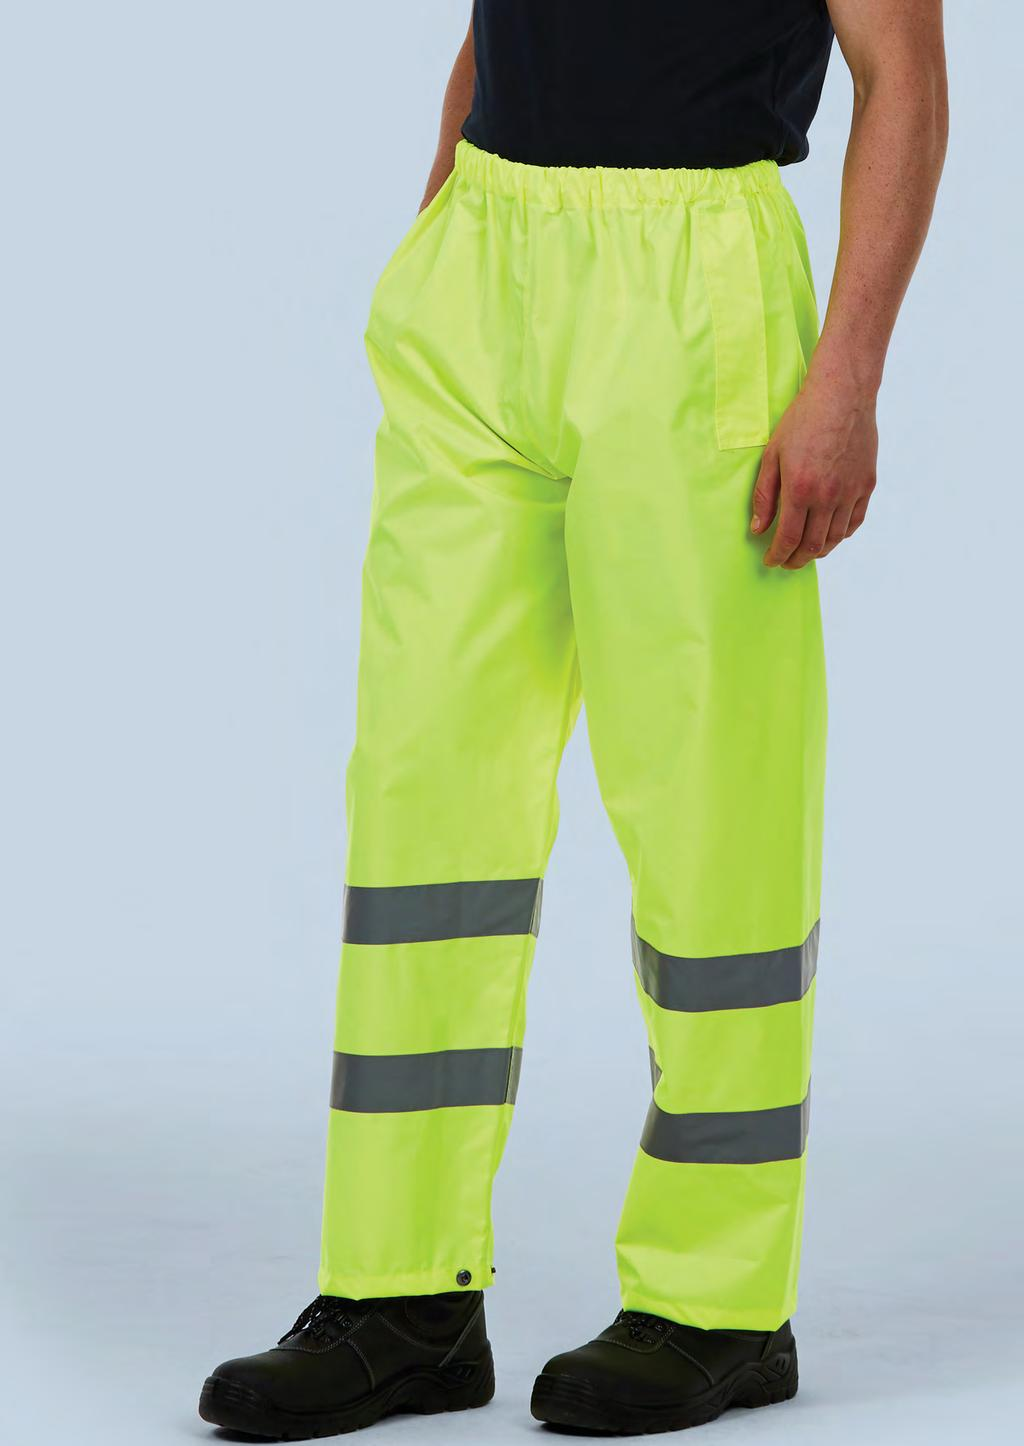 HI-VIS UC807 UNISEX HI-VIZ TROUSER 300 DENIER 60 50/1 EN ISO 20471:2013 Class 1 Approved EN 343 Class 3:1 Approved GO/RT 3279 Issue 8 (Orange Only) Conforming to 89/686/ EEC Directive